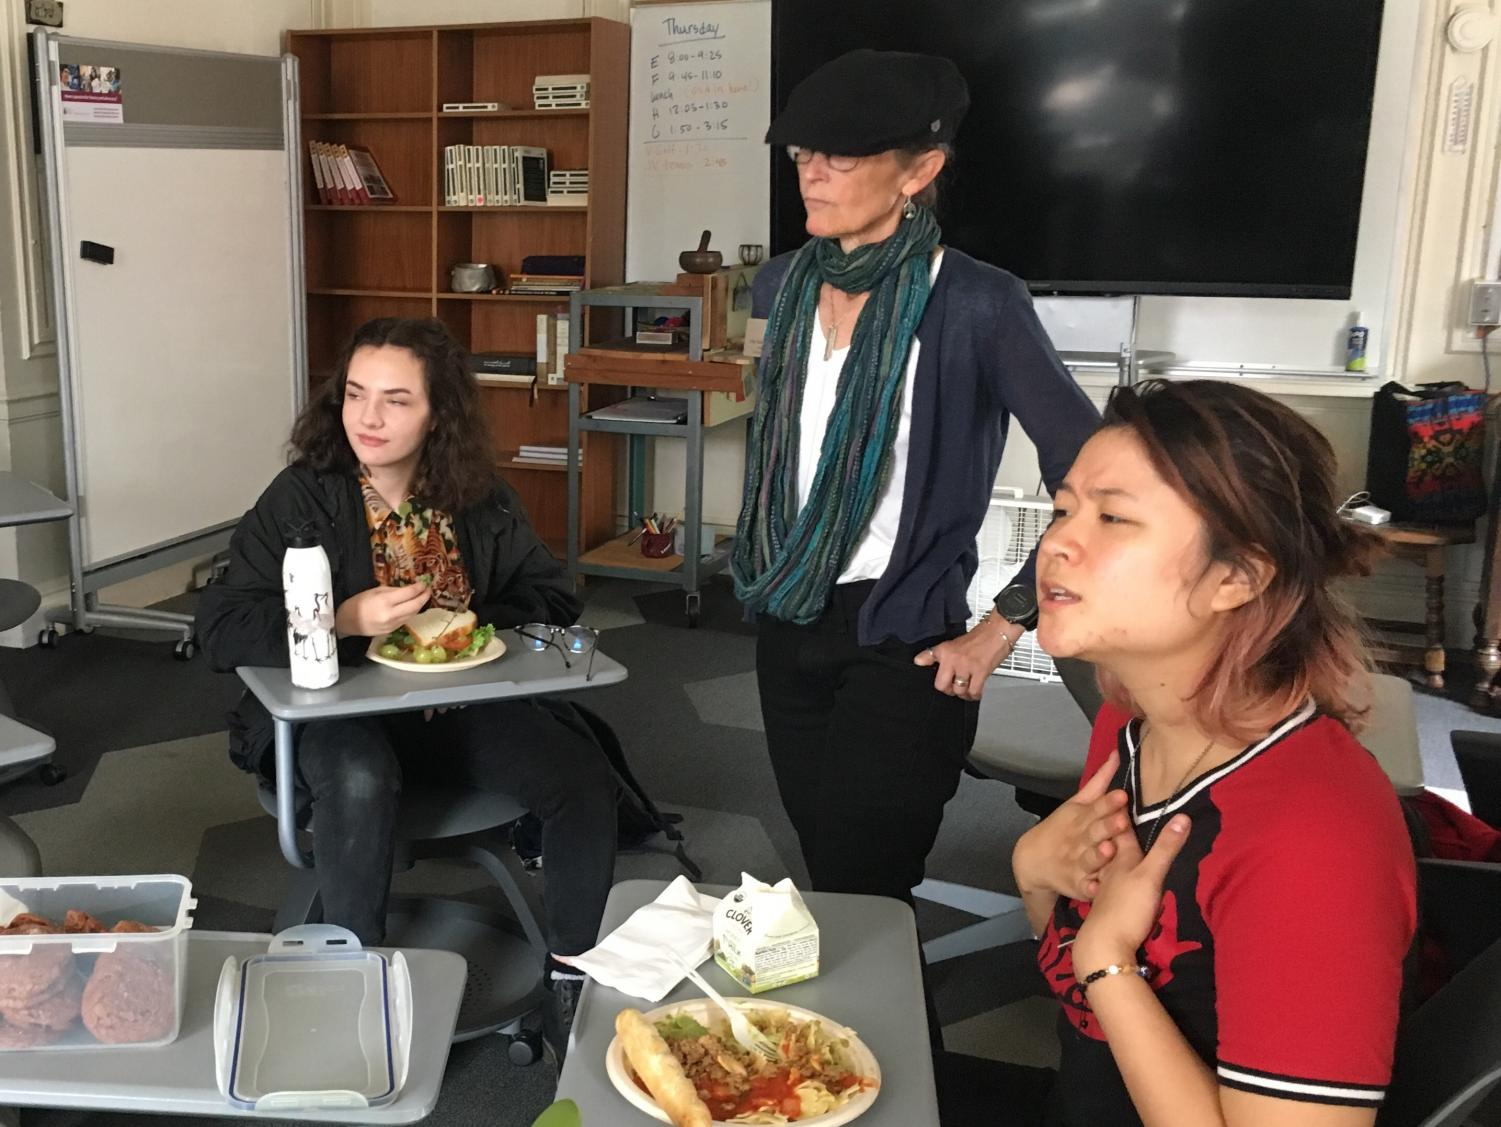 Club head Darrean Loy leads a discussion on LGBT+ representation in media during a Gender and Sexuality Awareness Club meeting. Club members enjoyed homemade Nutella cookies during the discussion.